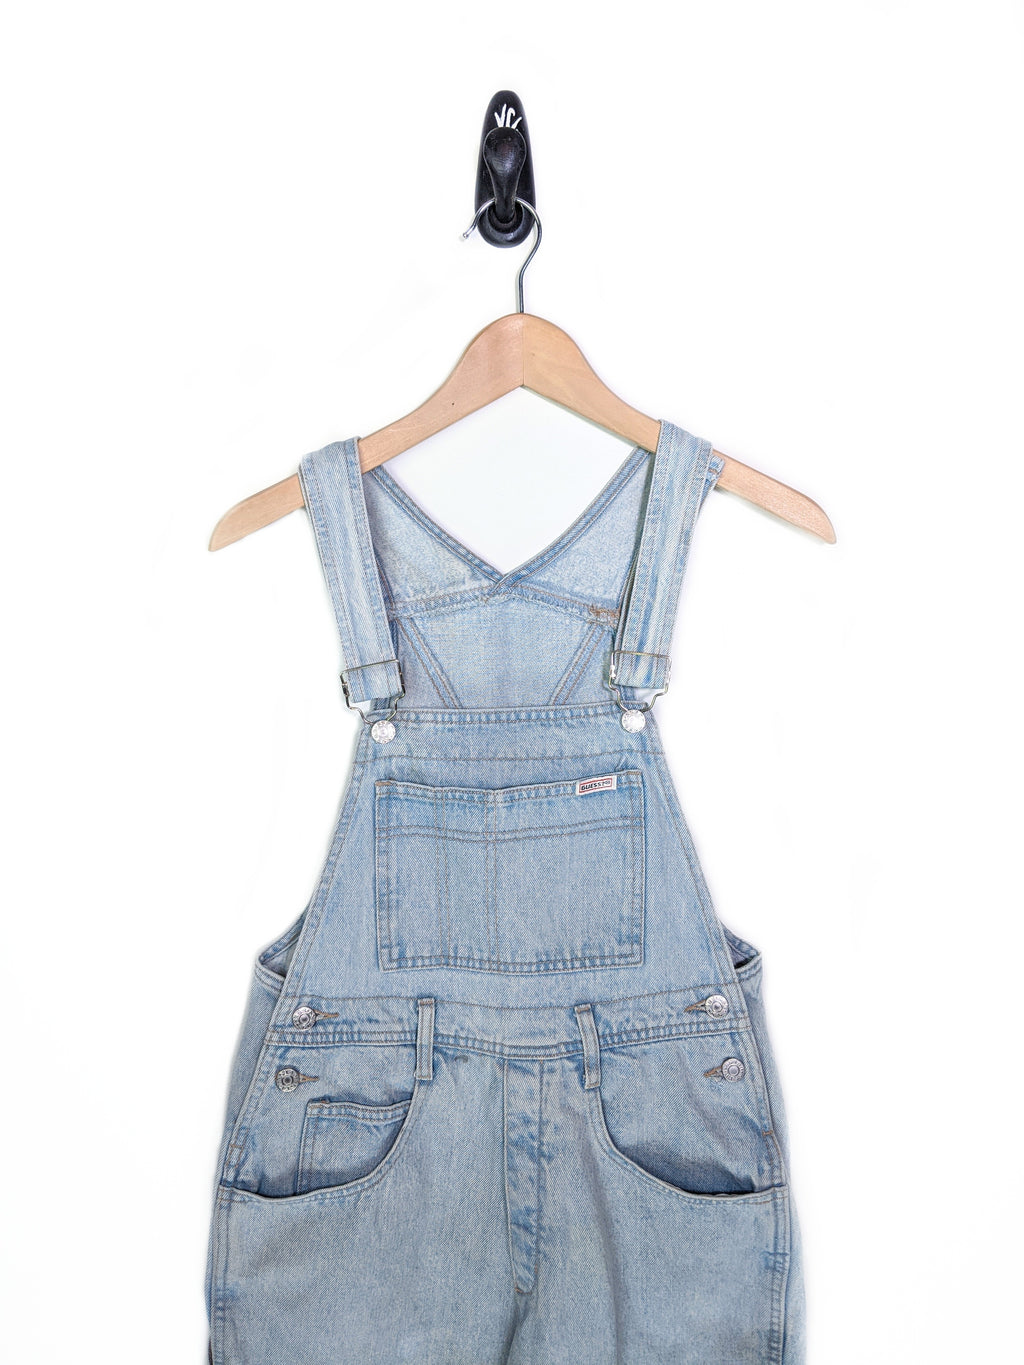 Guess Overalls (3)